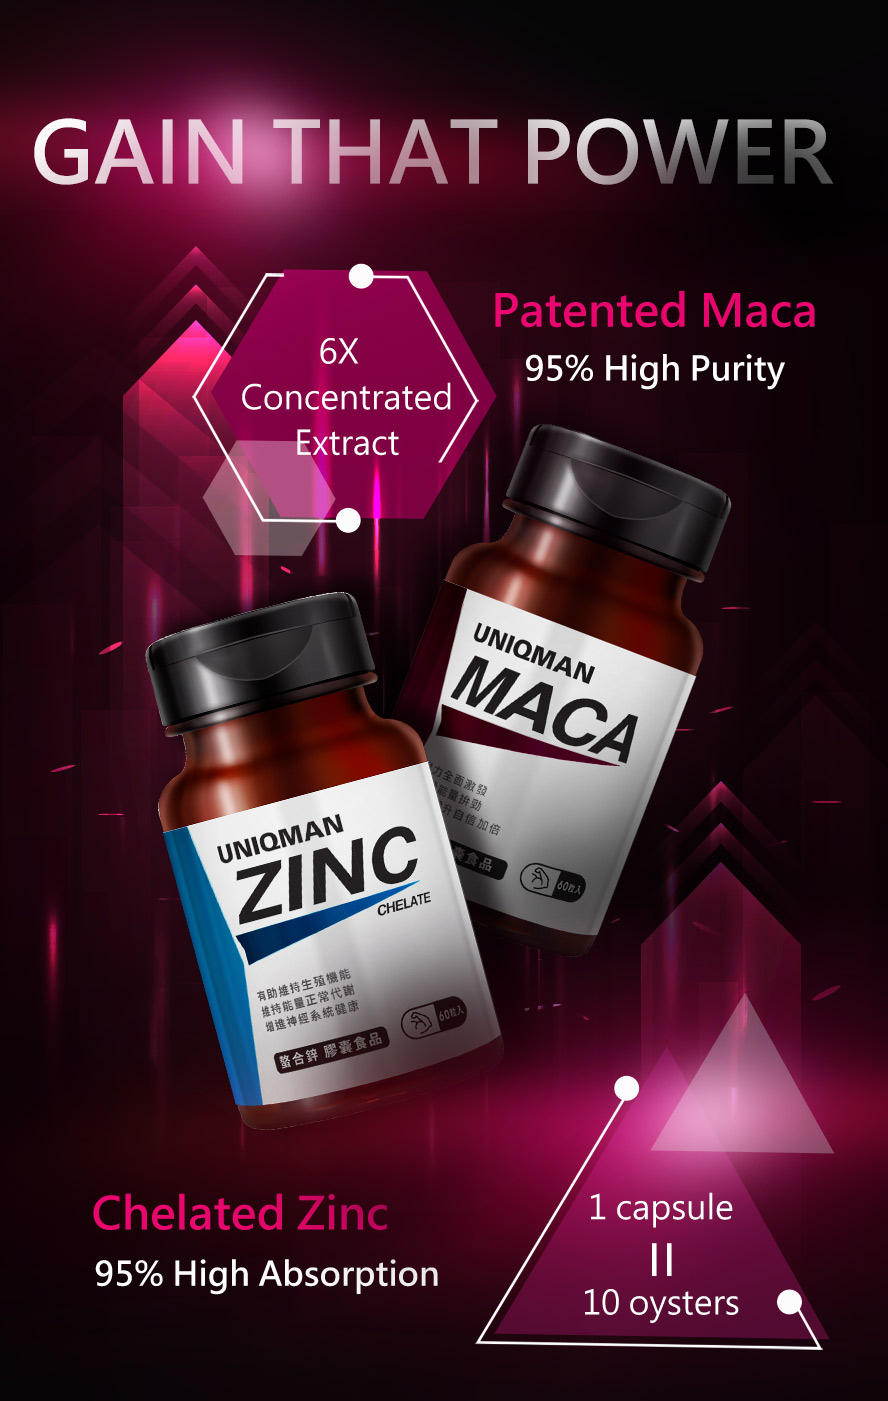 Maca improves sexual life and man power